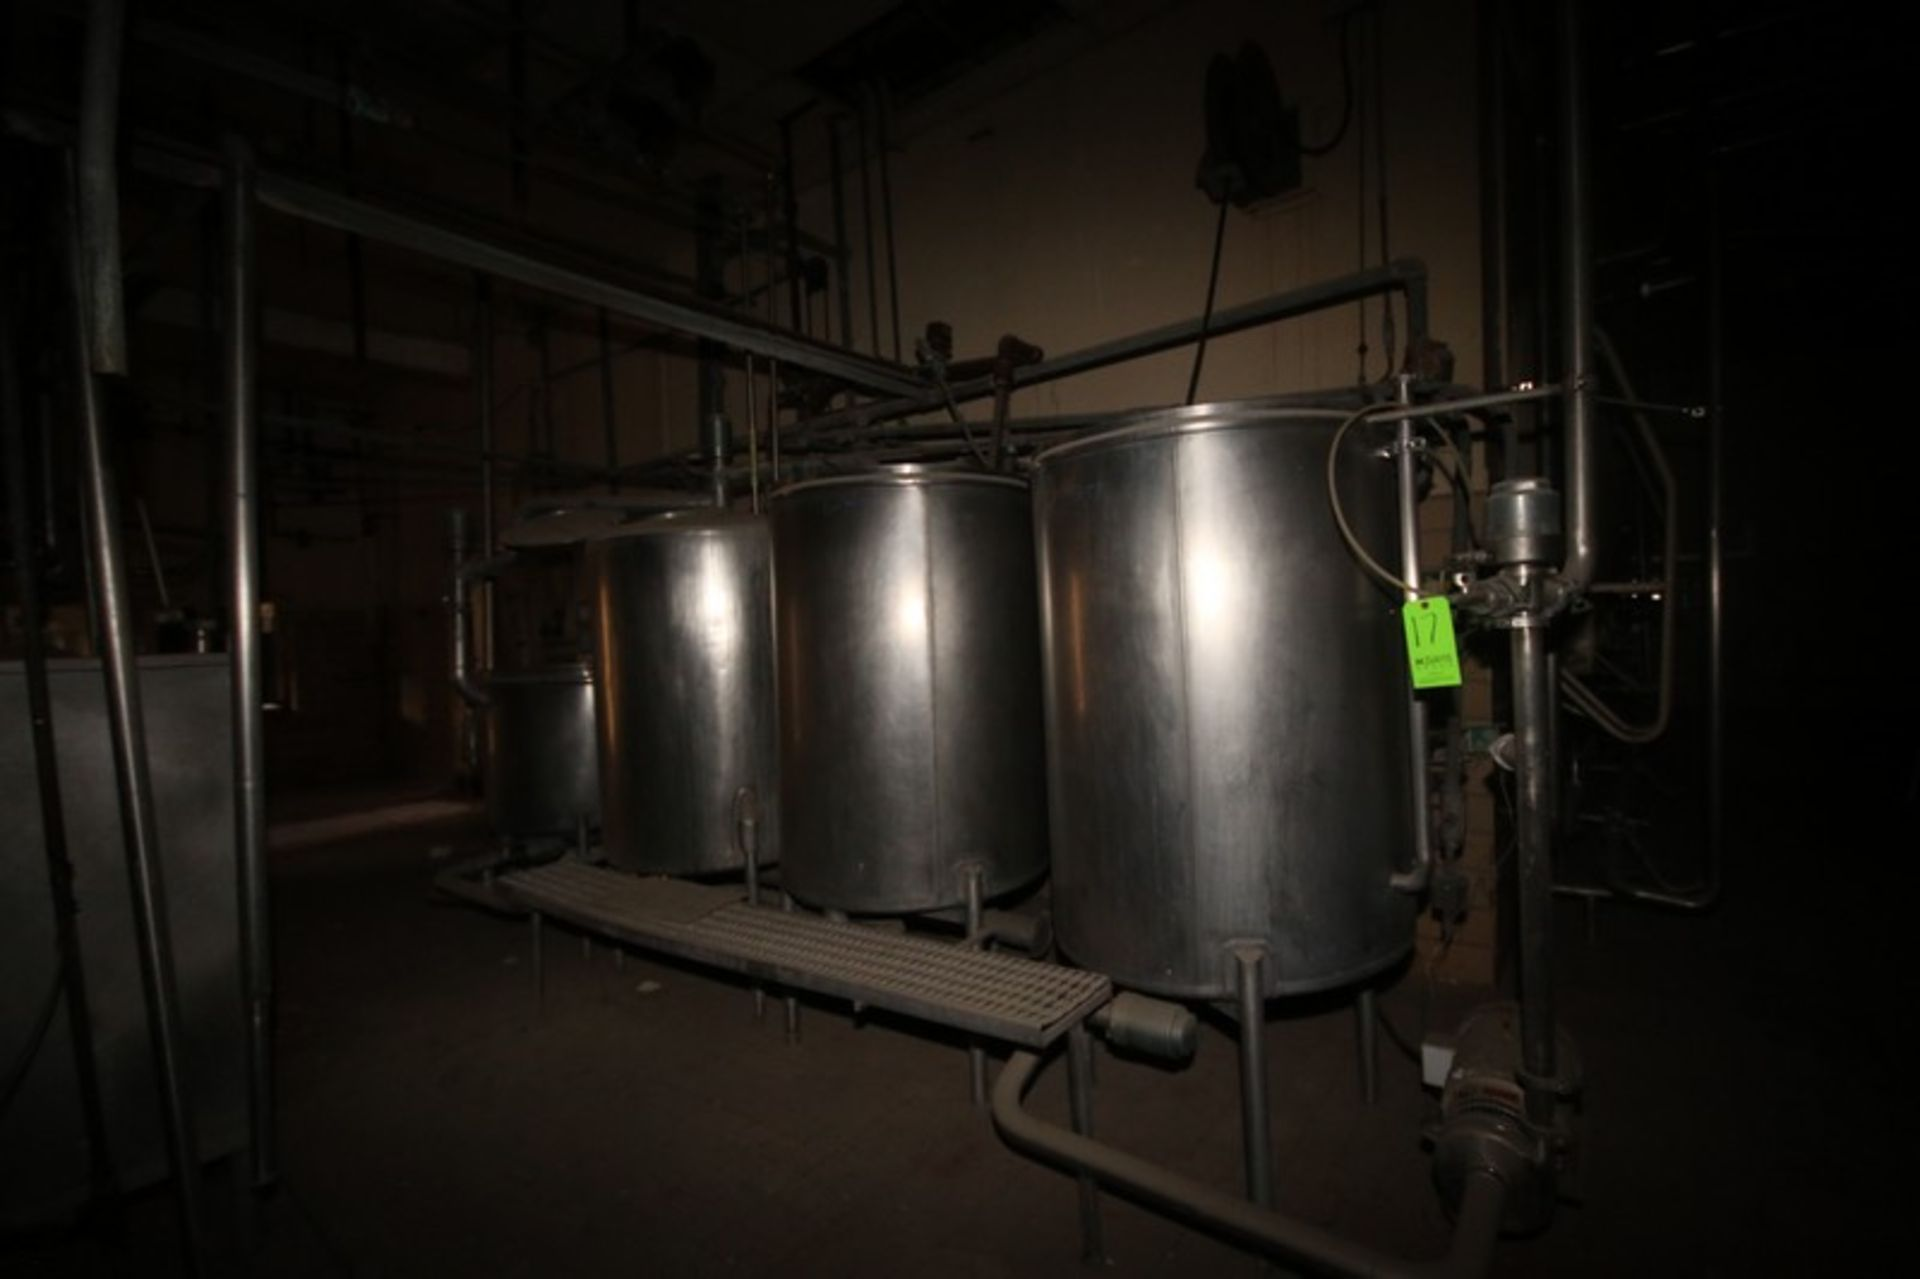 Tri-Clover 4-Tank CIP System, with (2) Centrigual Pumps. Includes S/S Balance Tank, Control Panel, & - Image 2 of 11